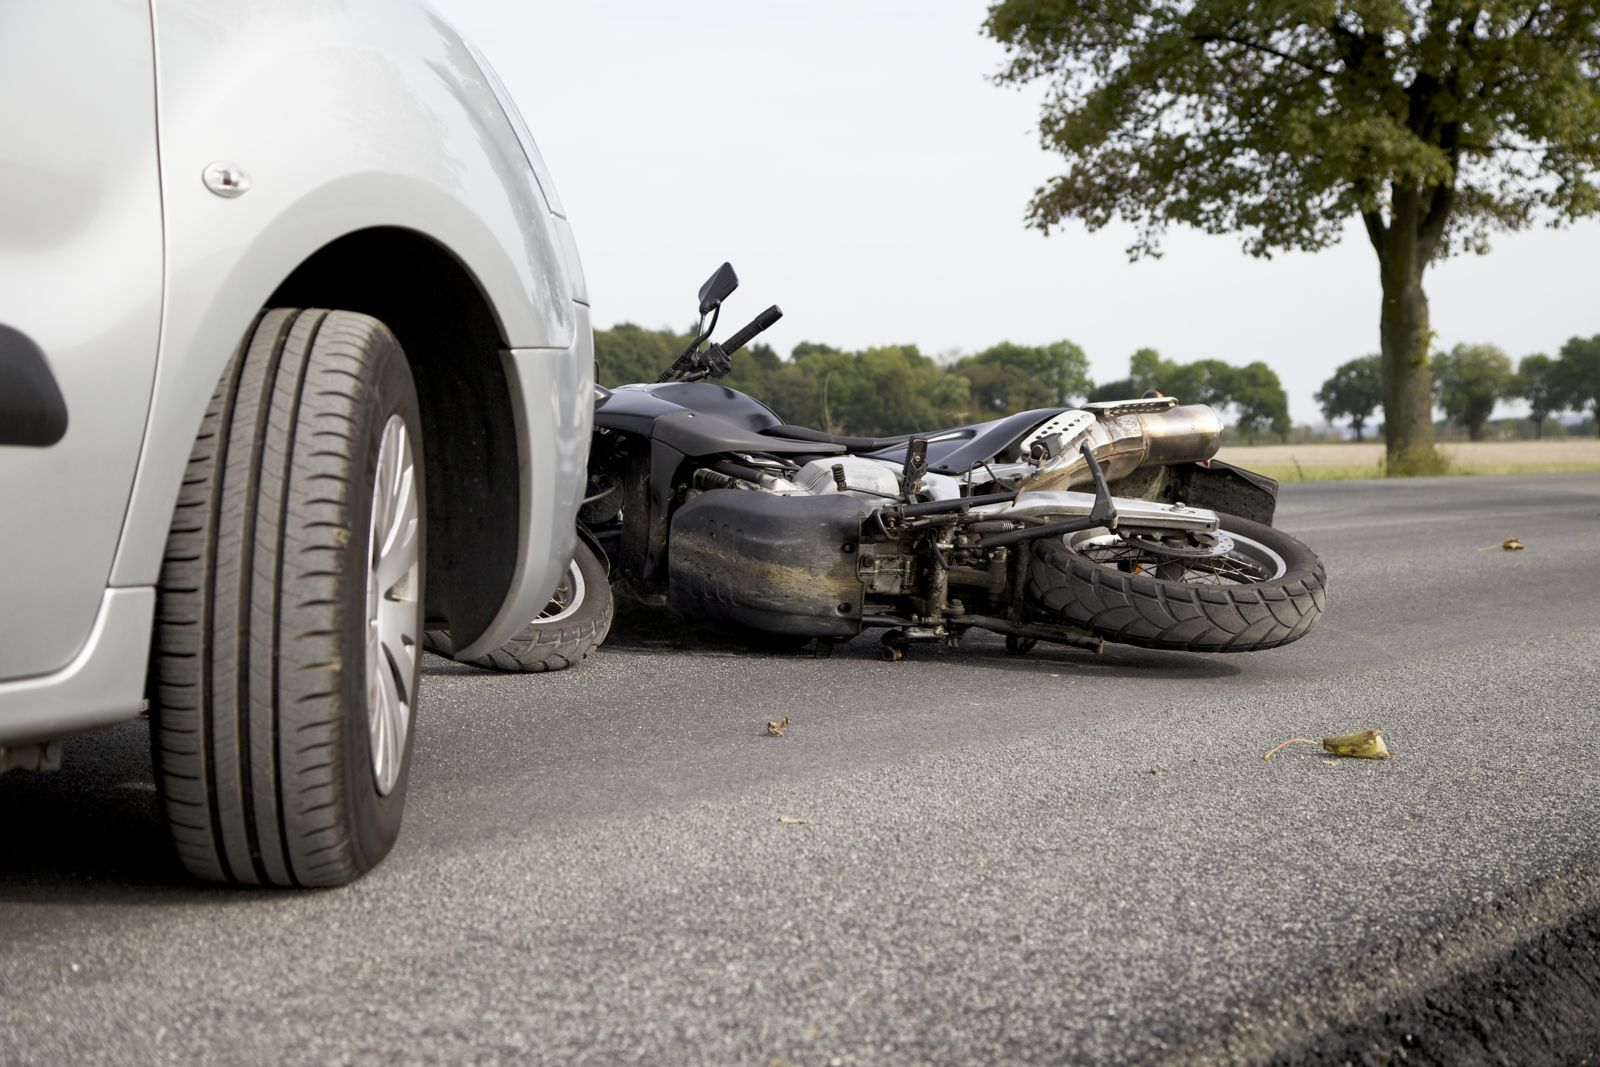 Motorcycle on Road After Accident